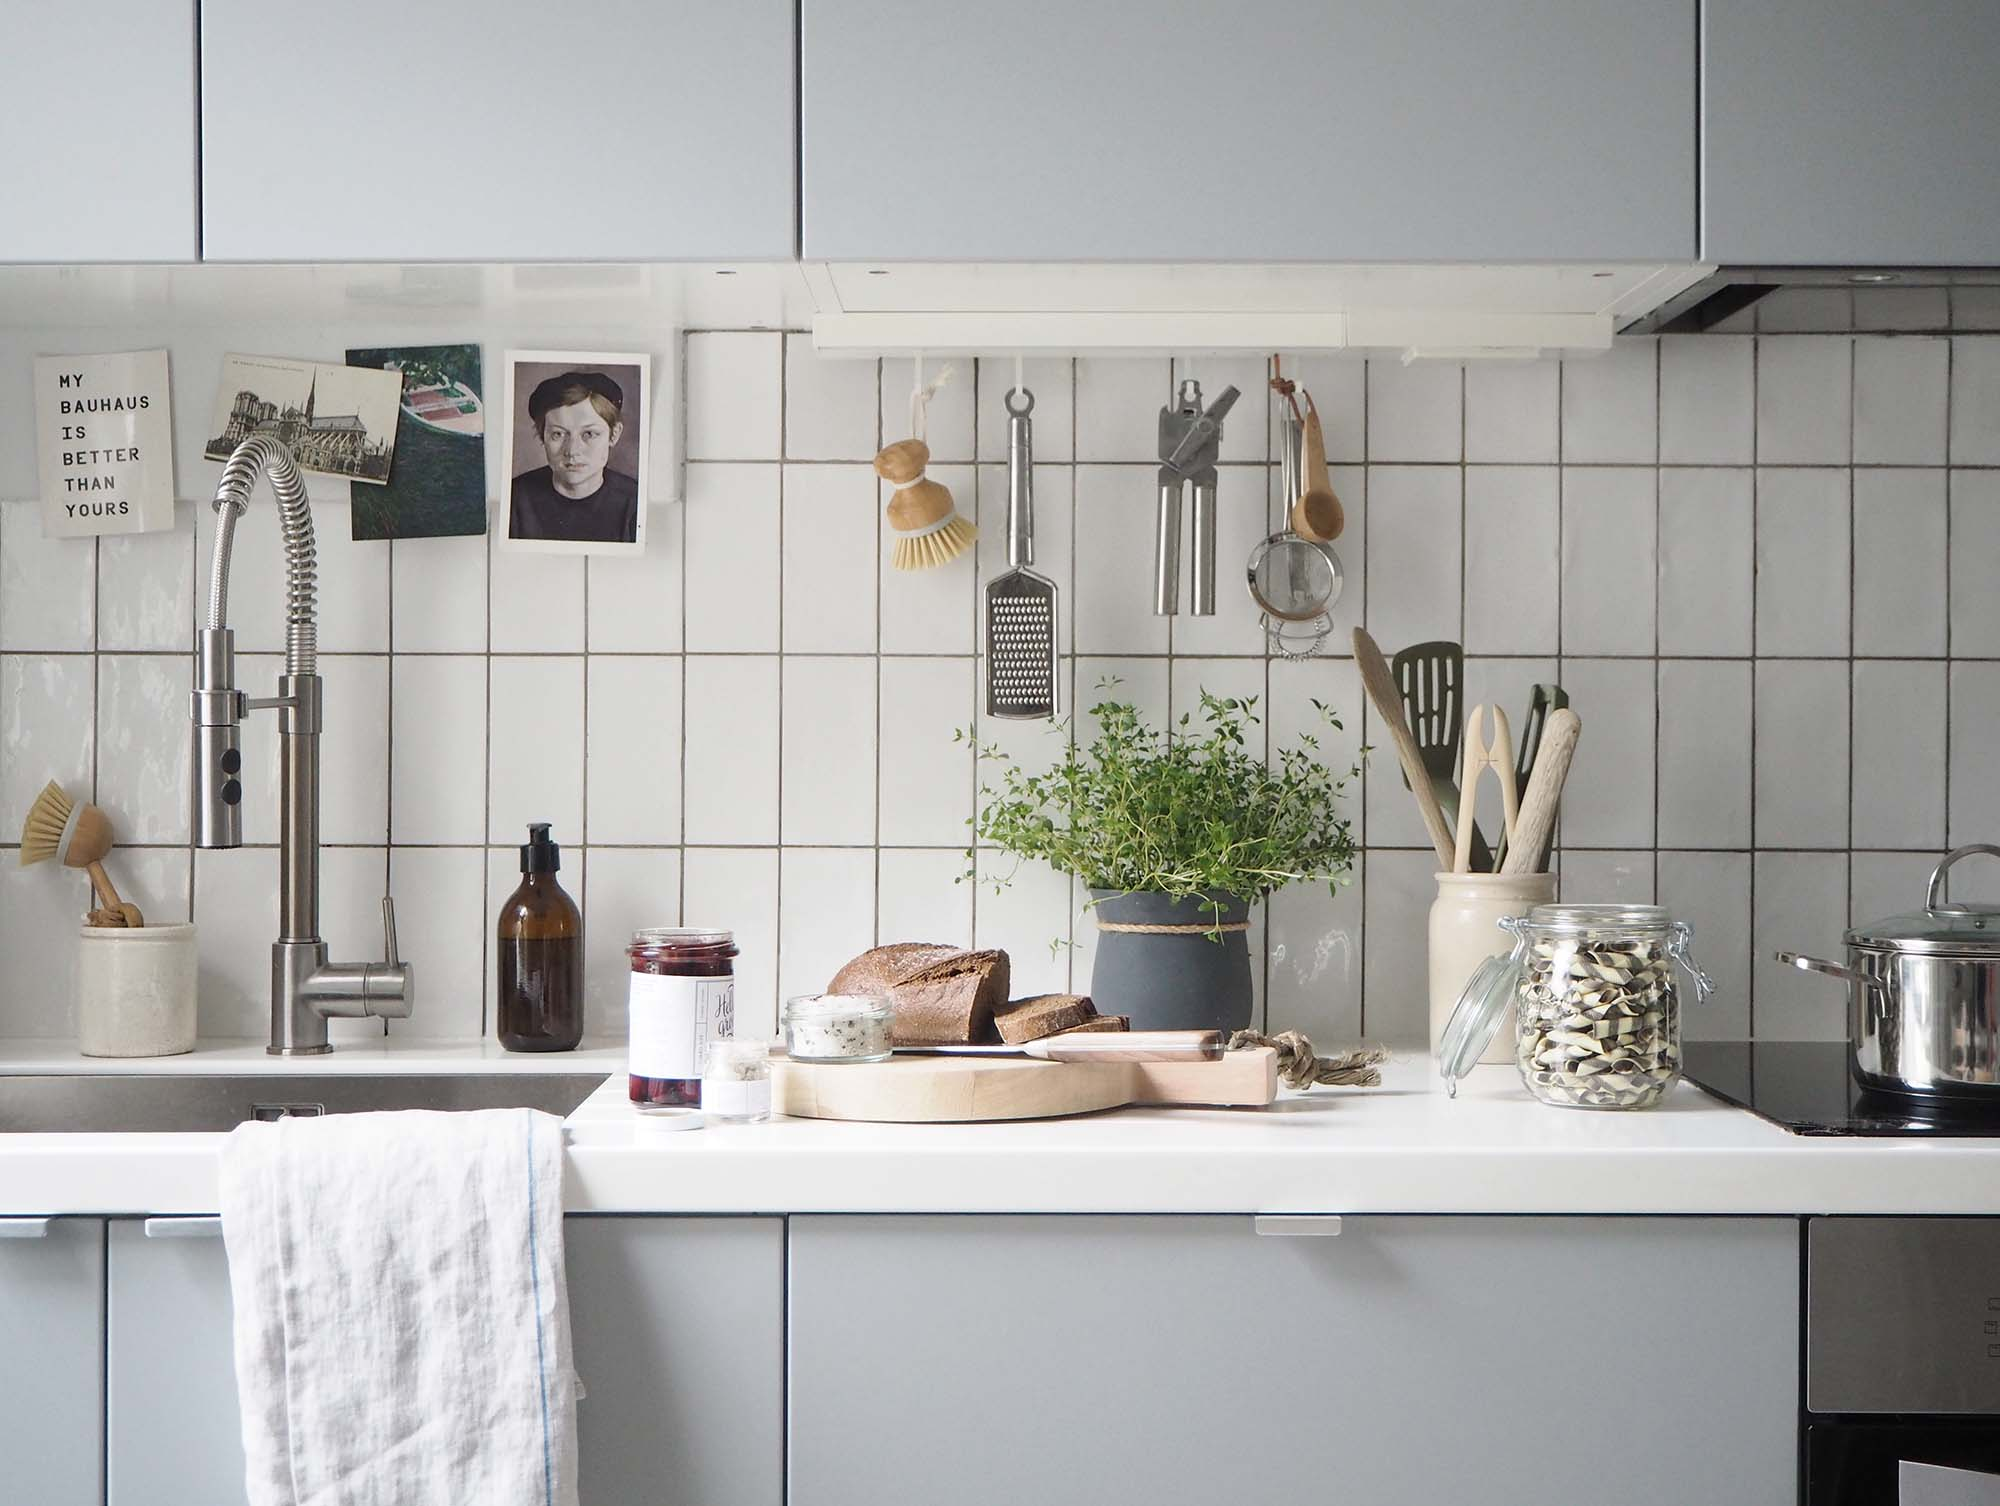 Affordable everyday kitchen essentials from homesense cate st hill geotapseo Choice Image